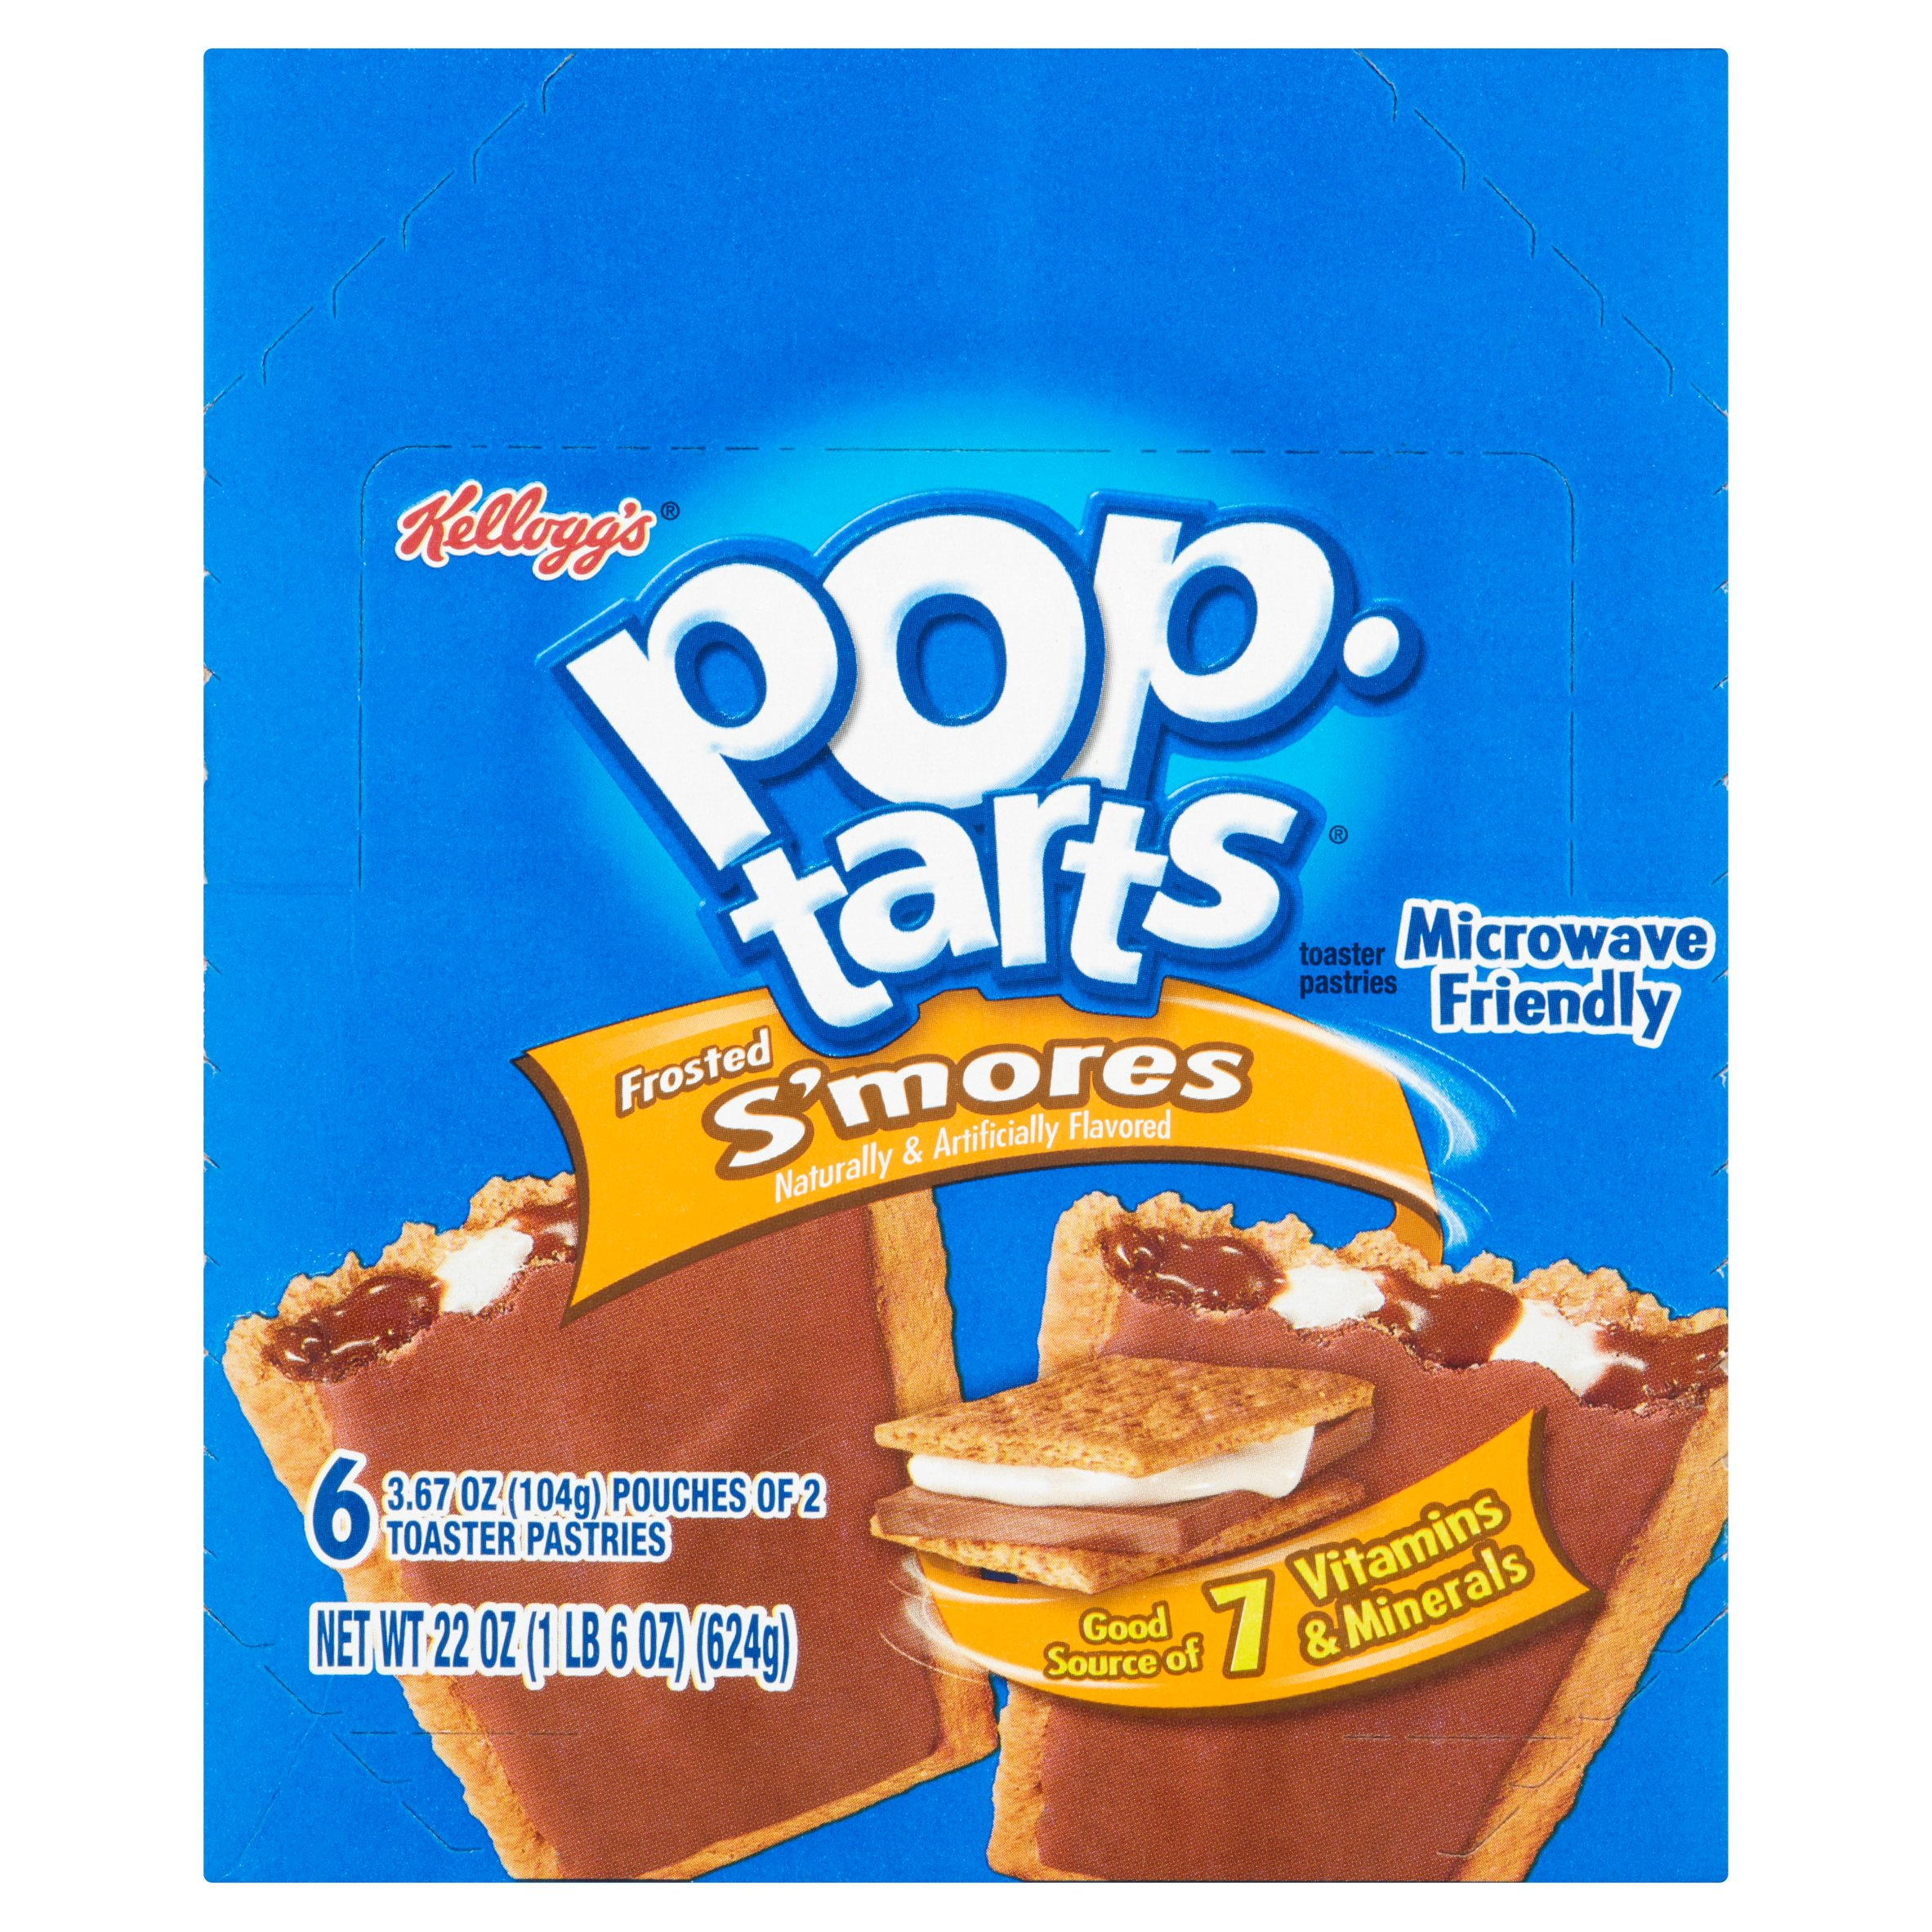 Kellogg's Pop Tarts Frosted S'mores Toaster Pastries, 3.67 oz, 6 count by Kellogg Sales Co.